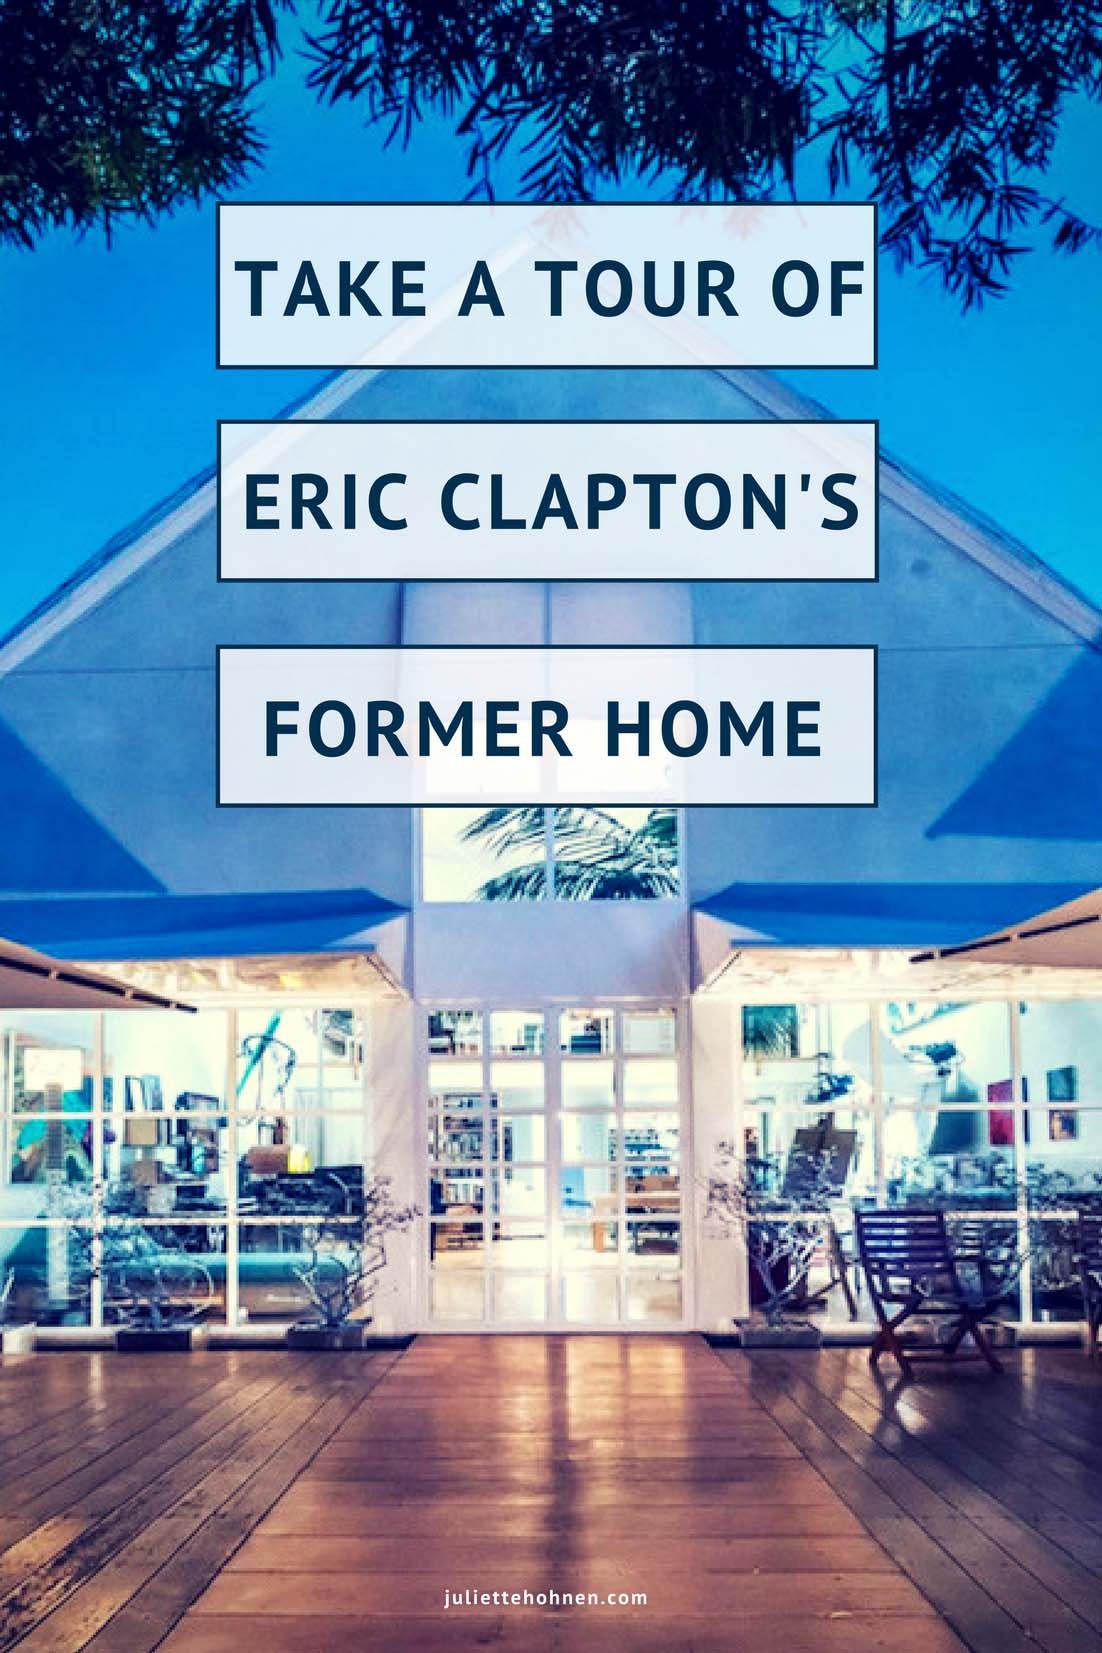 A Tour of Eric Clapton's Former Home